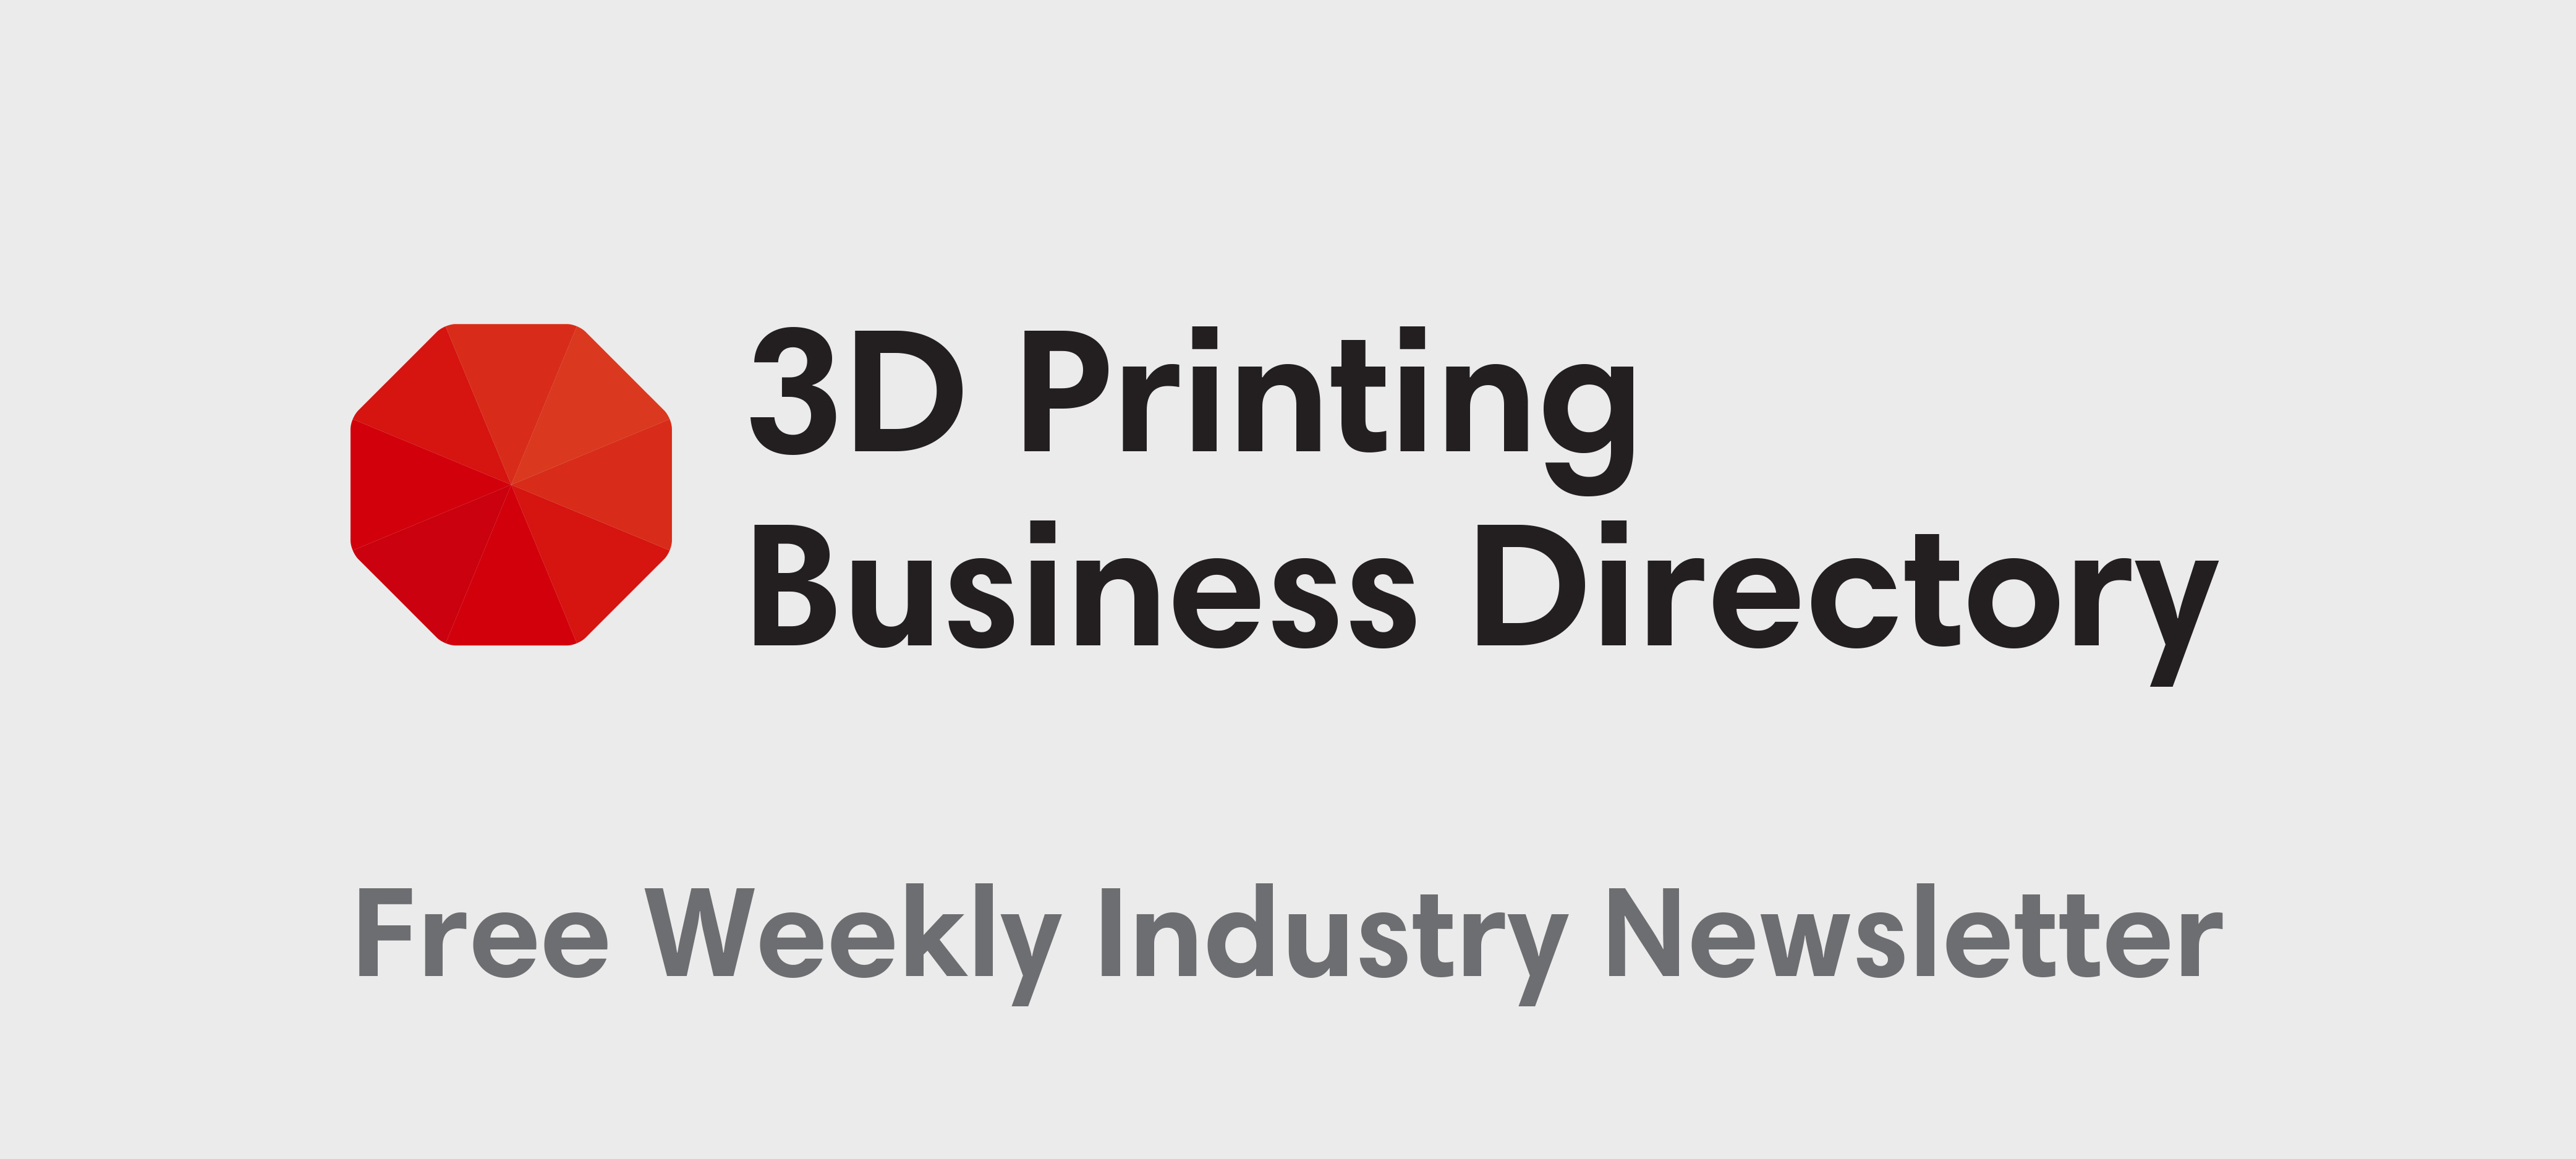 3D Printing Companies | Global 3D Printing Directory